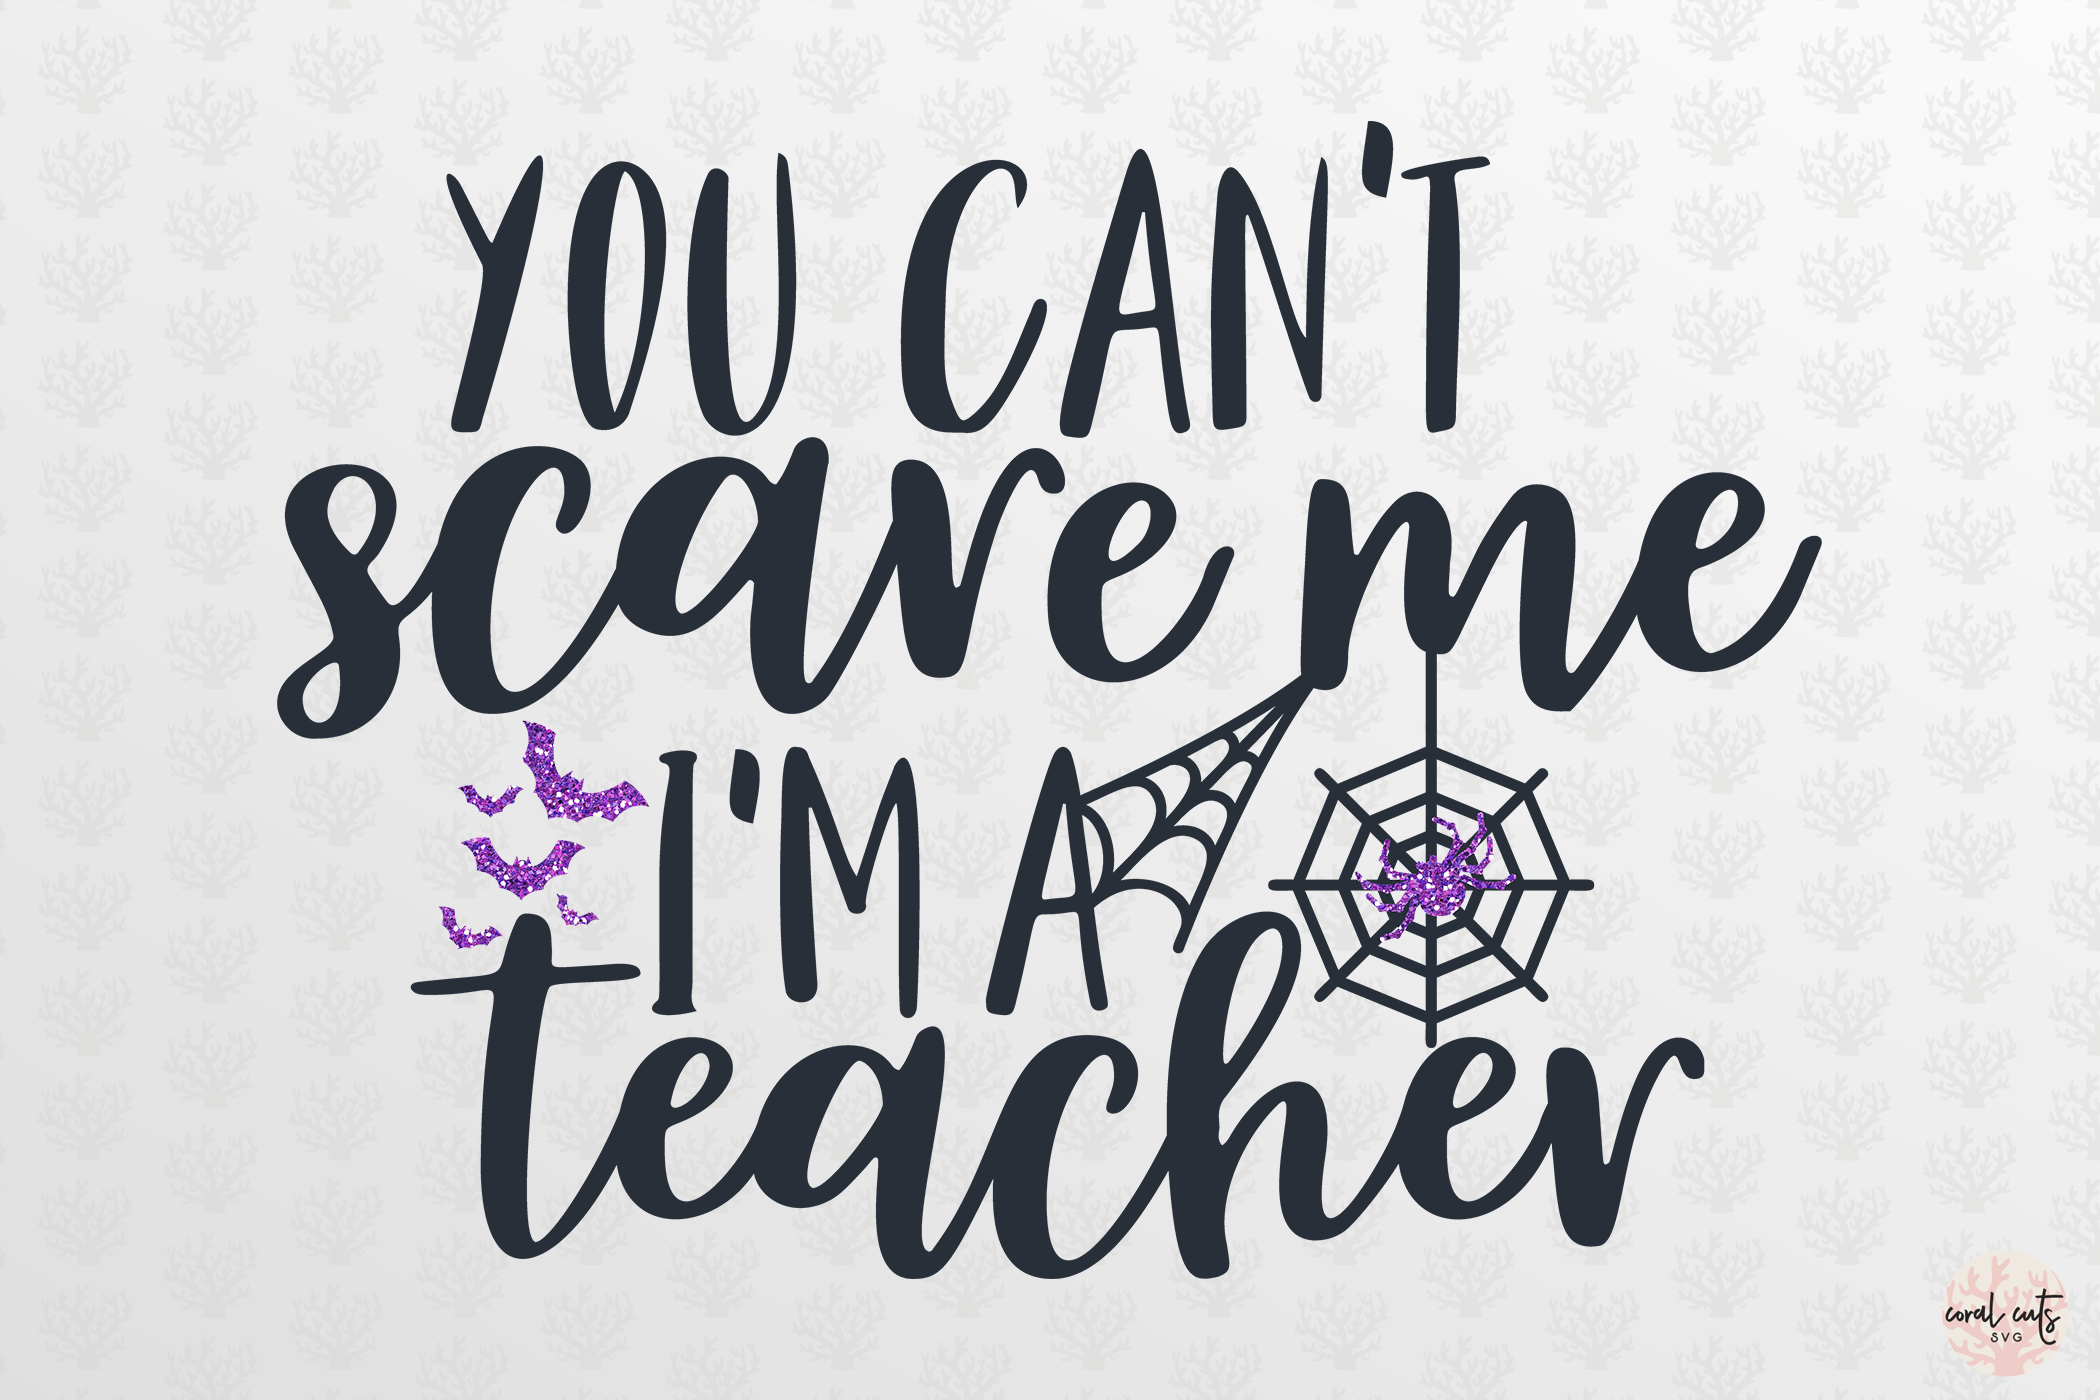 You Cant Scare Me I'M Teacher - Halloween SVG EPS DXF PNG example image 2